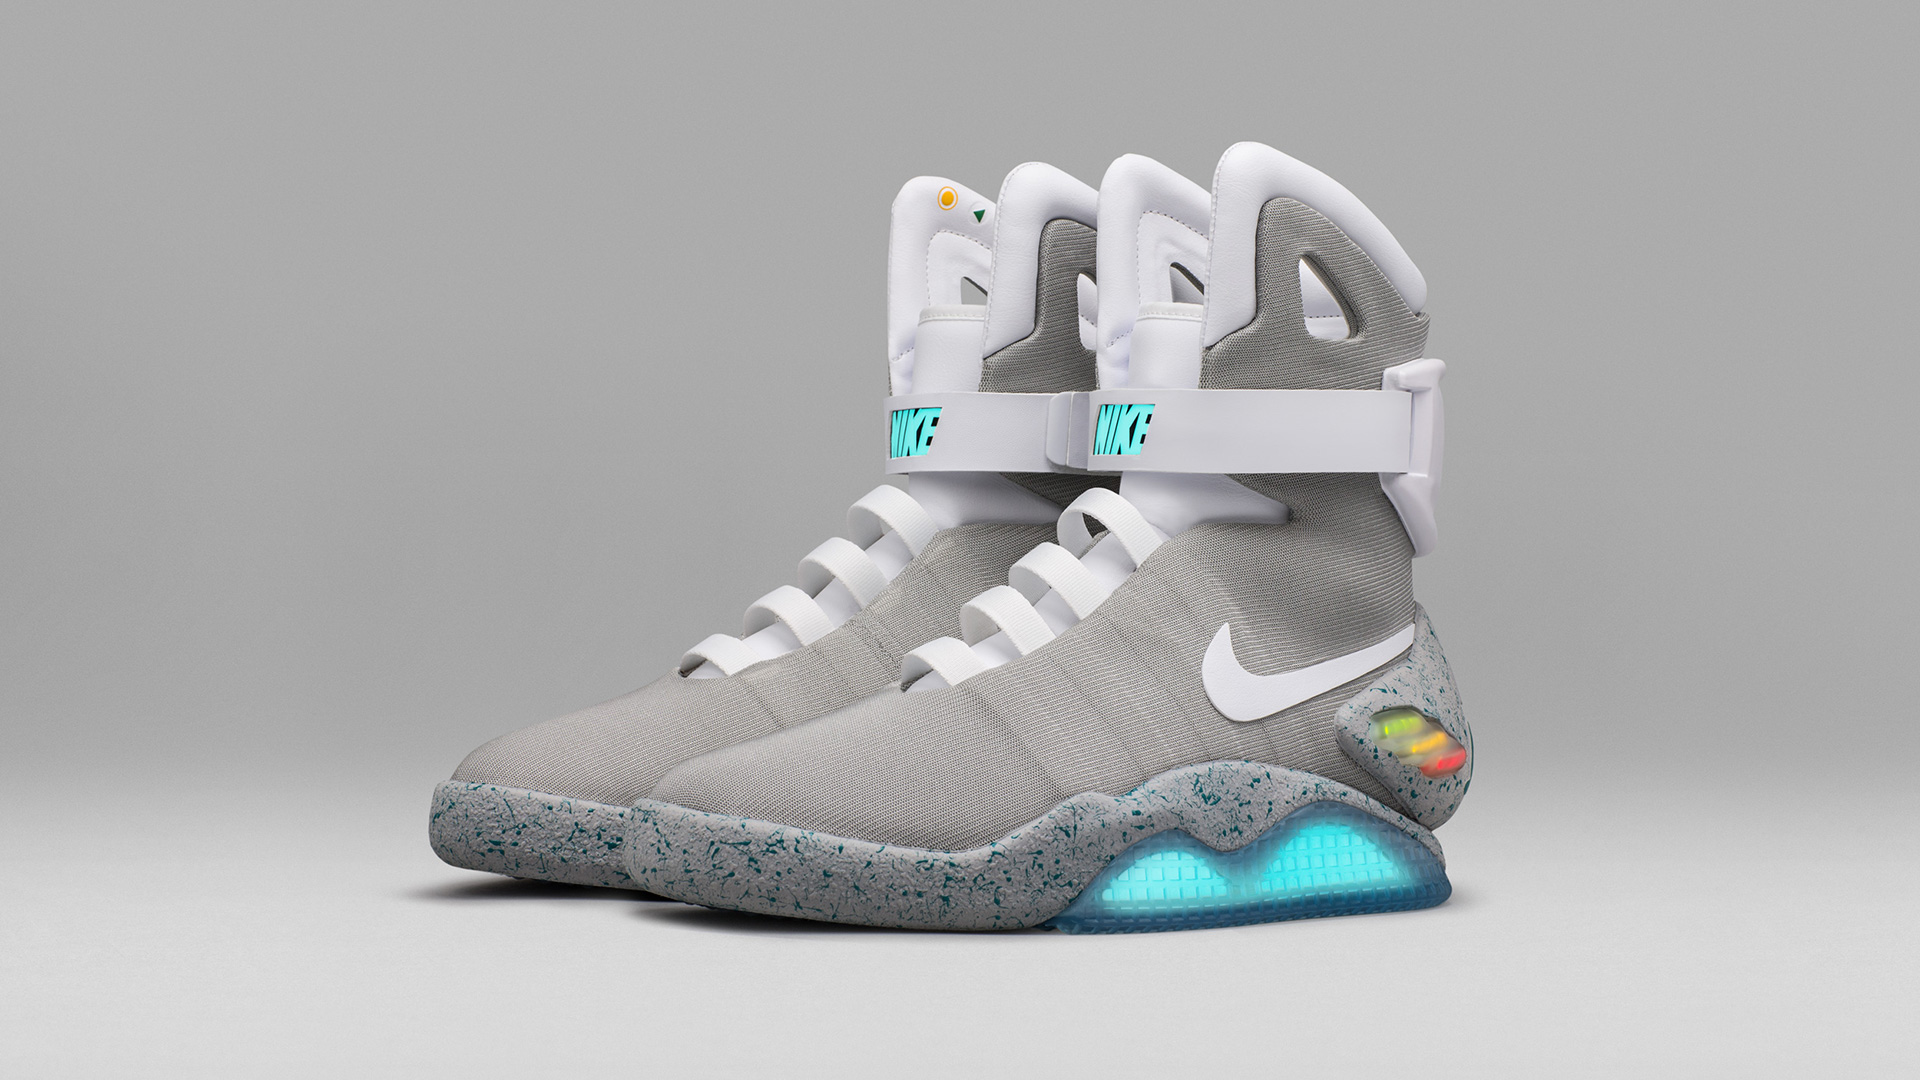 hot sale online 7a84d dae8c The Nike Mag Self-Lacing Sneakers Are Finally Here, but They re Only Making  89 Pairs – Adweek